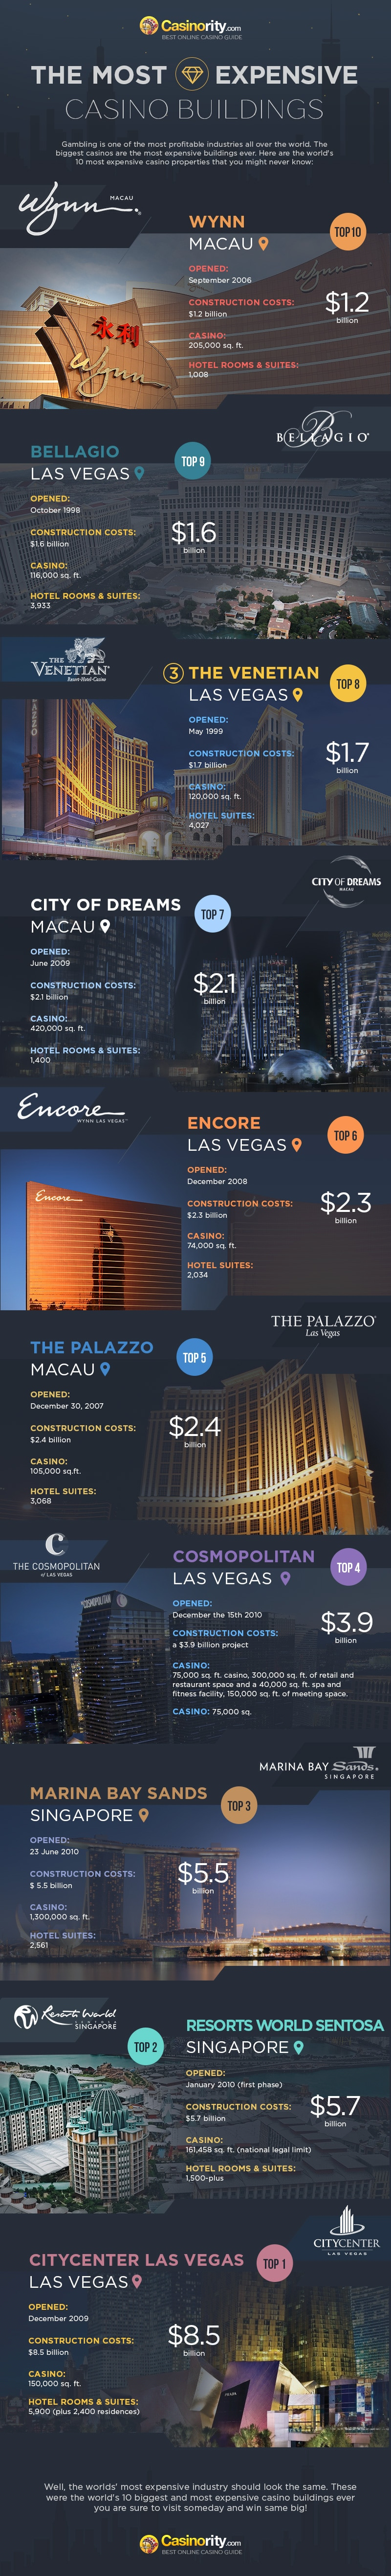 Top 10 Casino Buildings Infographic